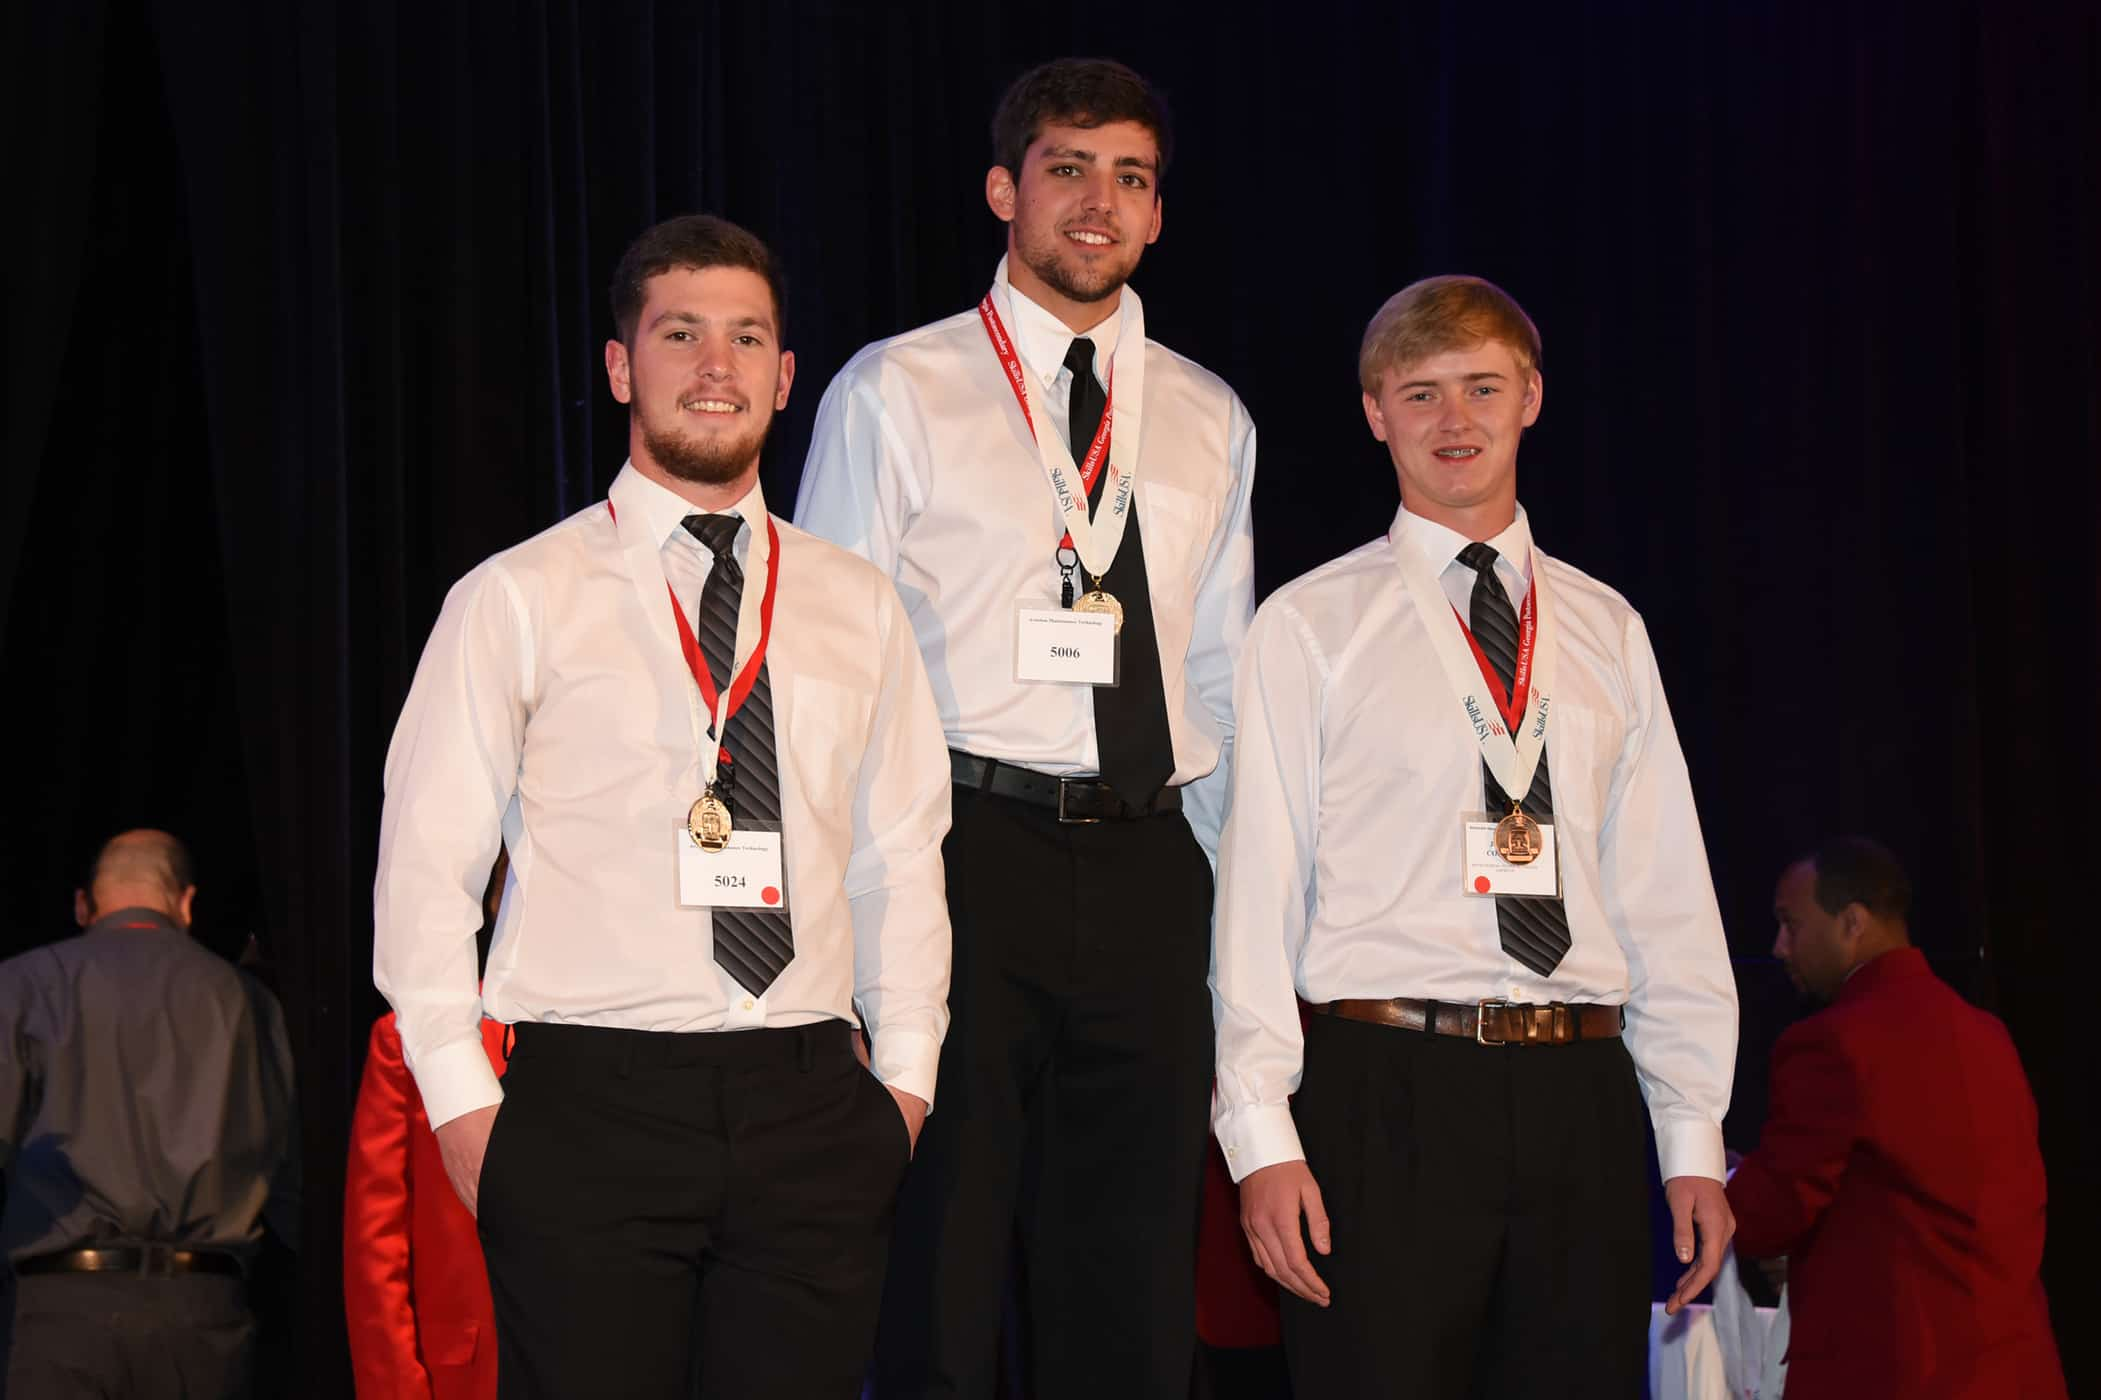 Three white males stand on top of a podium. The center male stands taller.